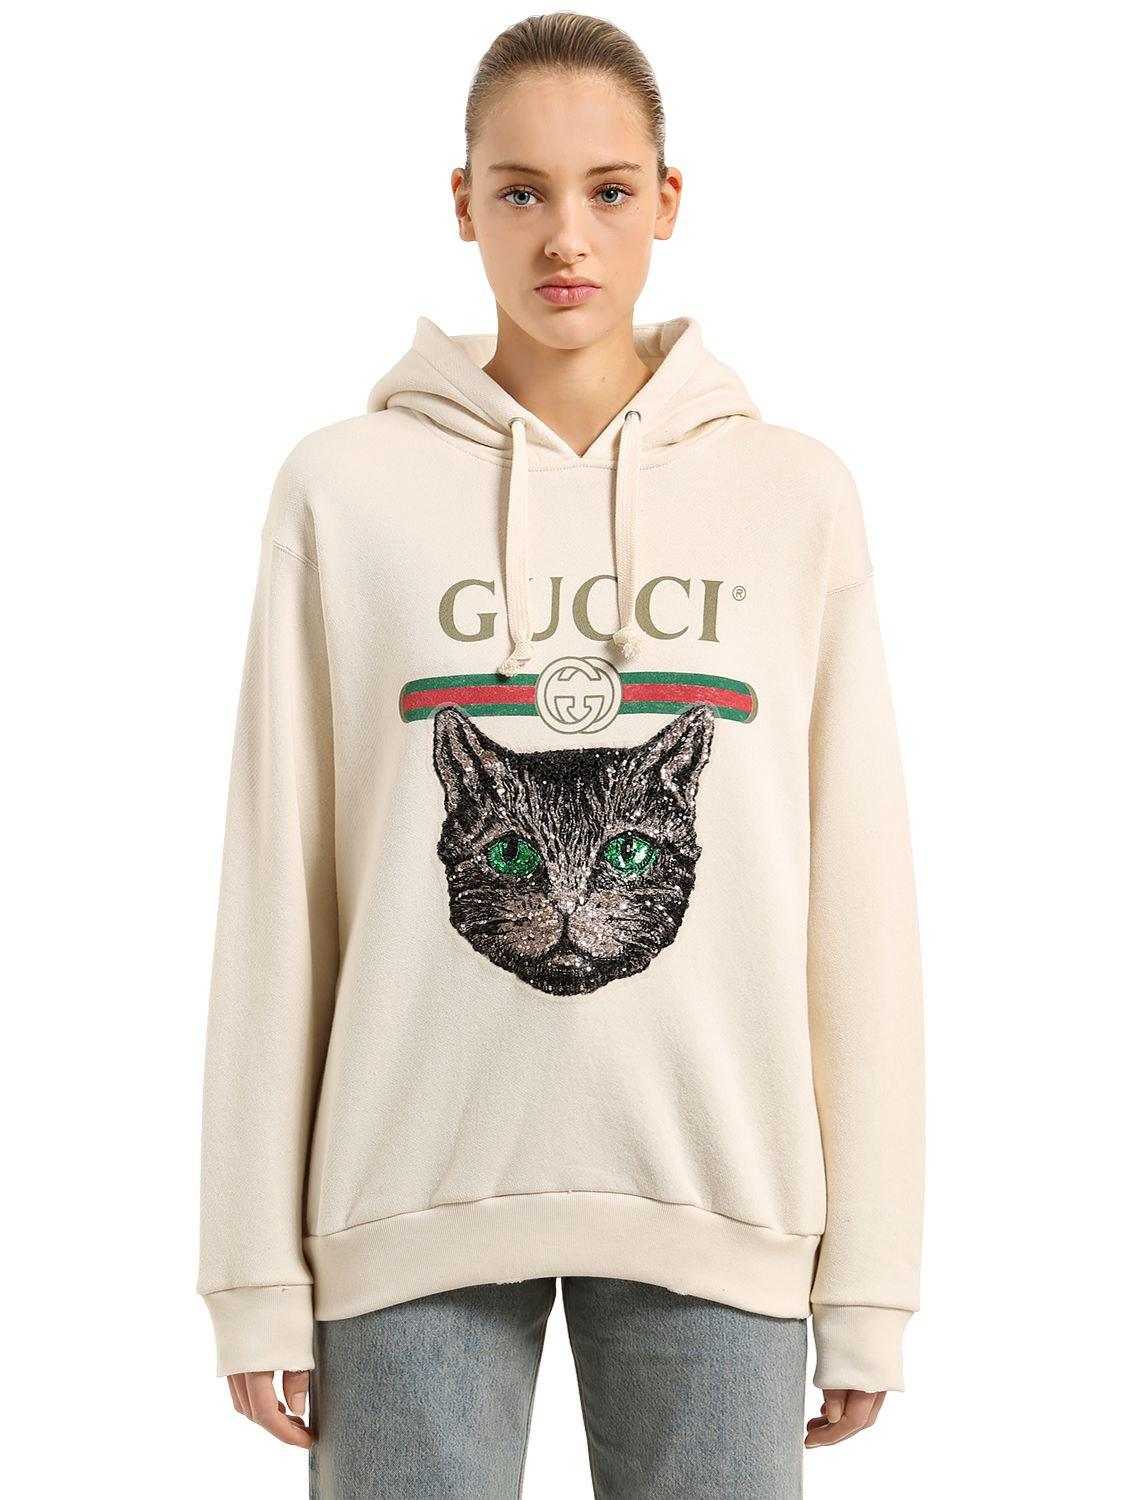 abd076a02e9 Lyst - Gucci Hooded Cat   Logo Printed Sweatshirt in White